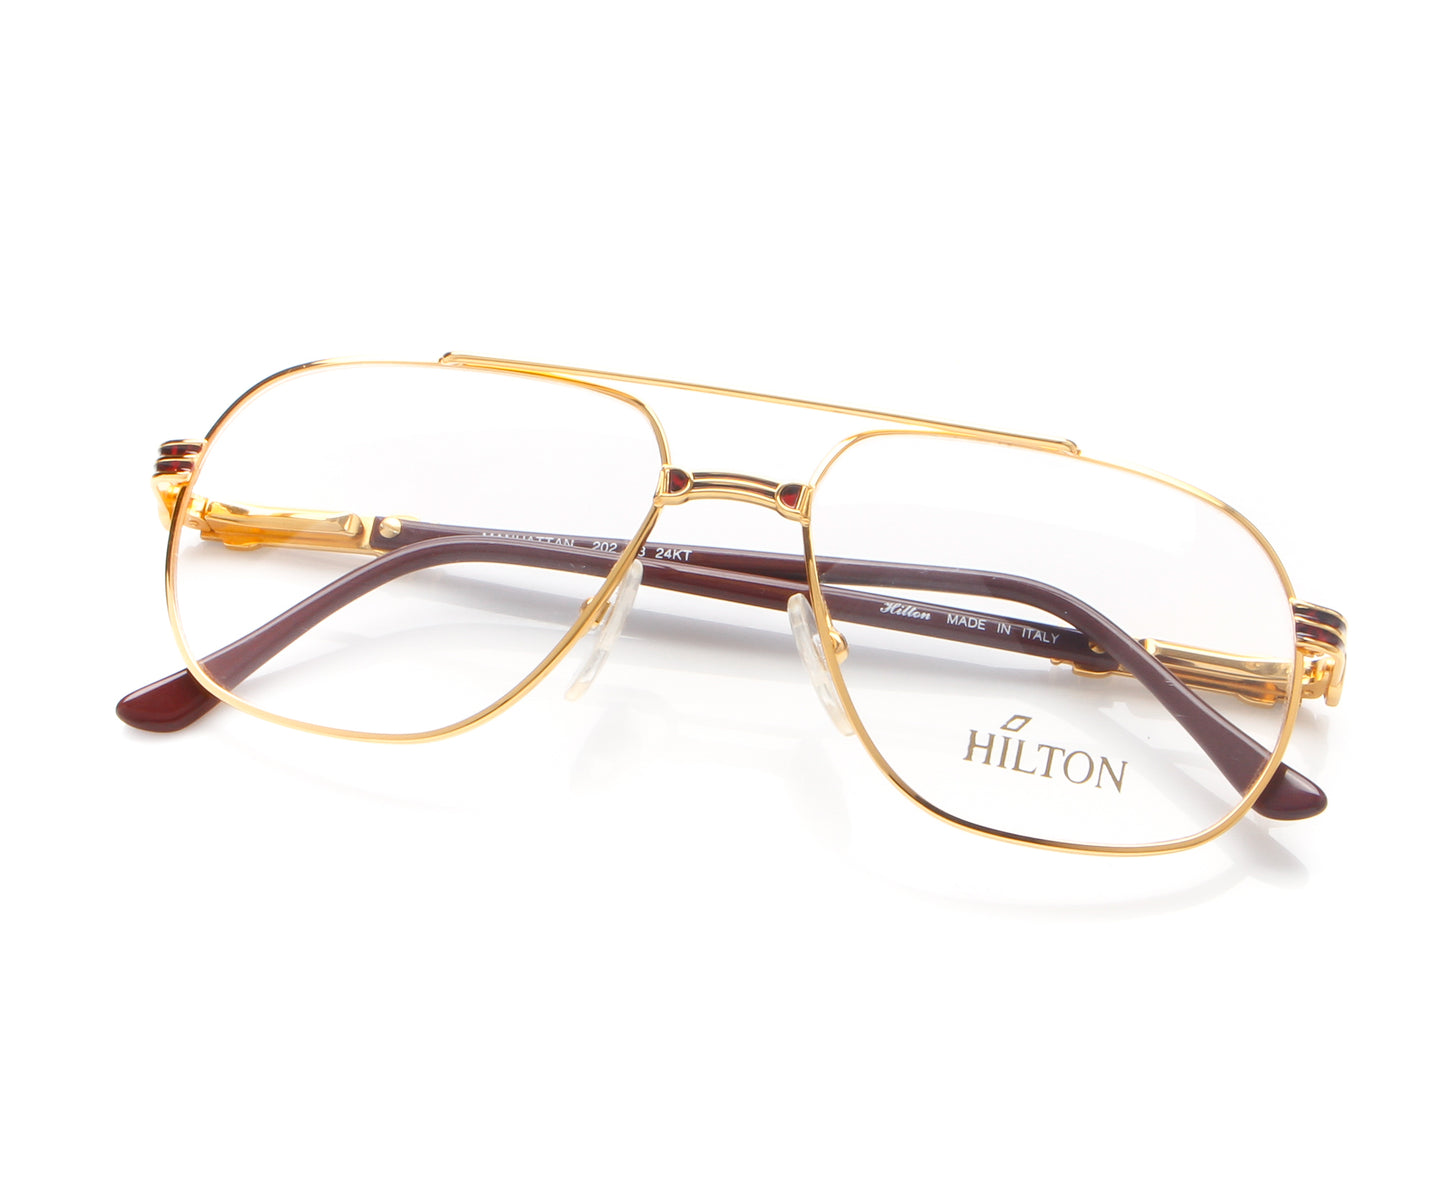 Vintage Hilton Manhattan 202 C3 24KT Thumb, Hilton , glasses frames, eyeglasses online, eyeglass frames, mens glasses, womens glasses, buy glasses online, designer eyeglasses, vintage sunglasses, retro sunglasses, vintage glasses, sunglass, eyeglass, glasses, lens, vintage frames company, vf